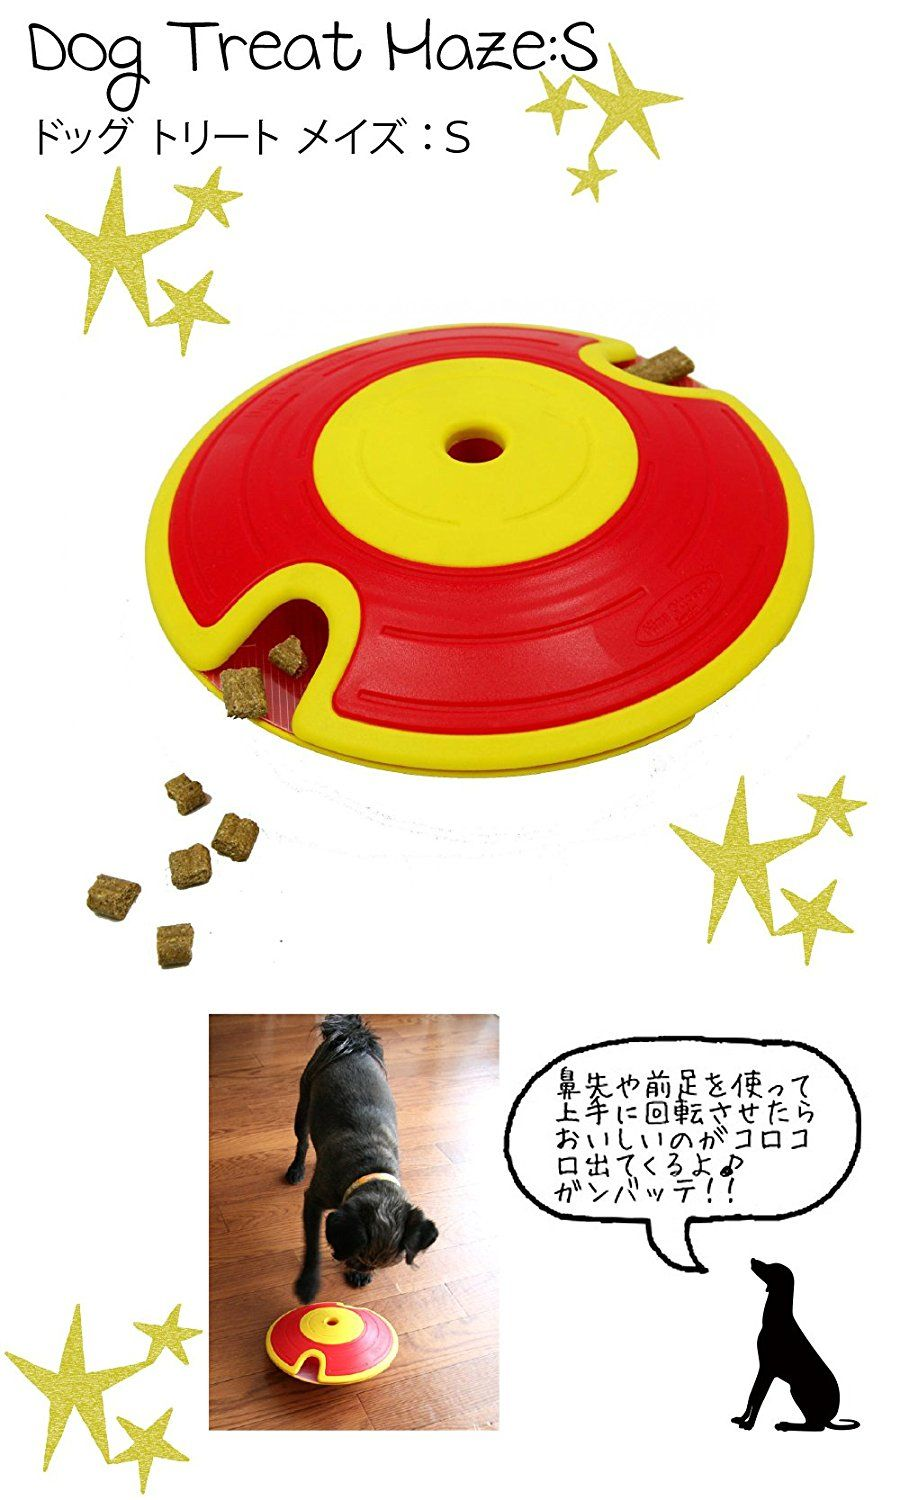 Nina Ottosson 41050 Dog Treat Maze Interactive Puzzle Mental Stimulation Brain Game Click Image For More Details This Is An Cat Toys Dog Treats Pet Toys